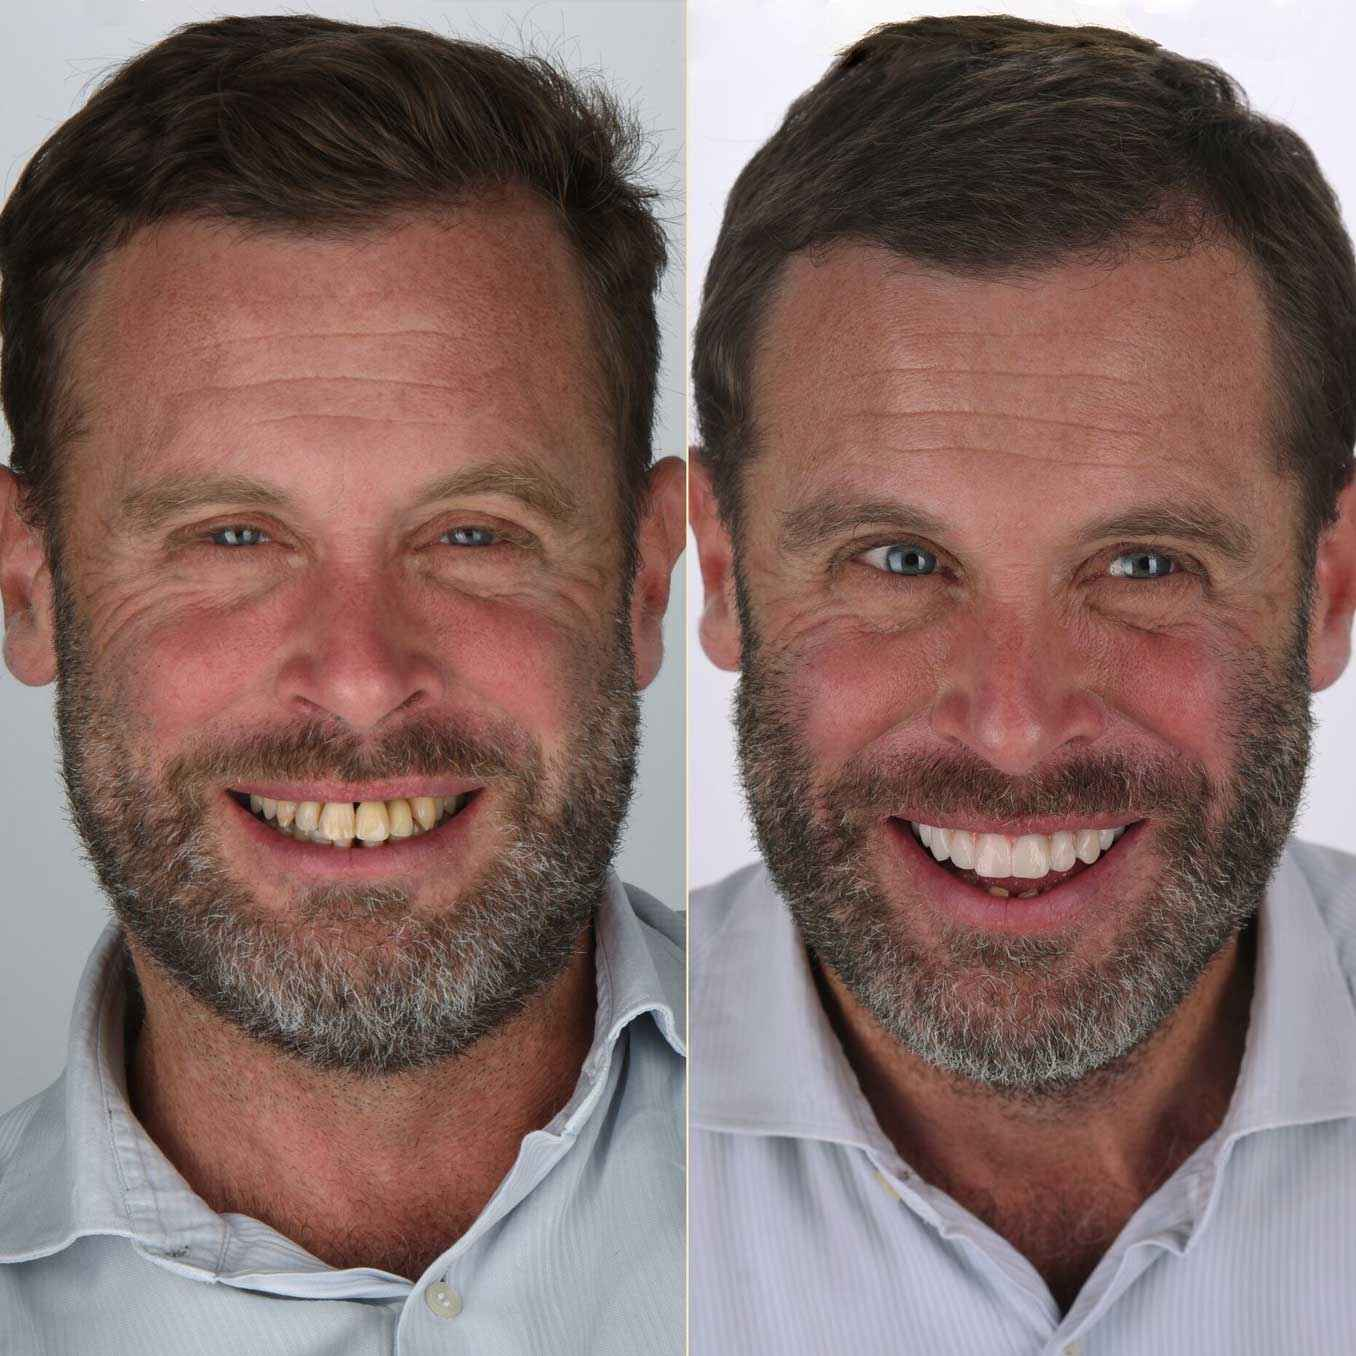 The Before and After Francois's New Smile